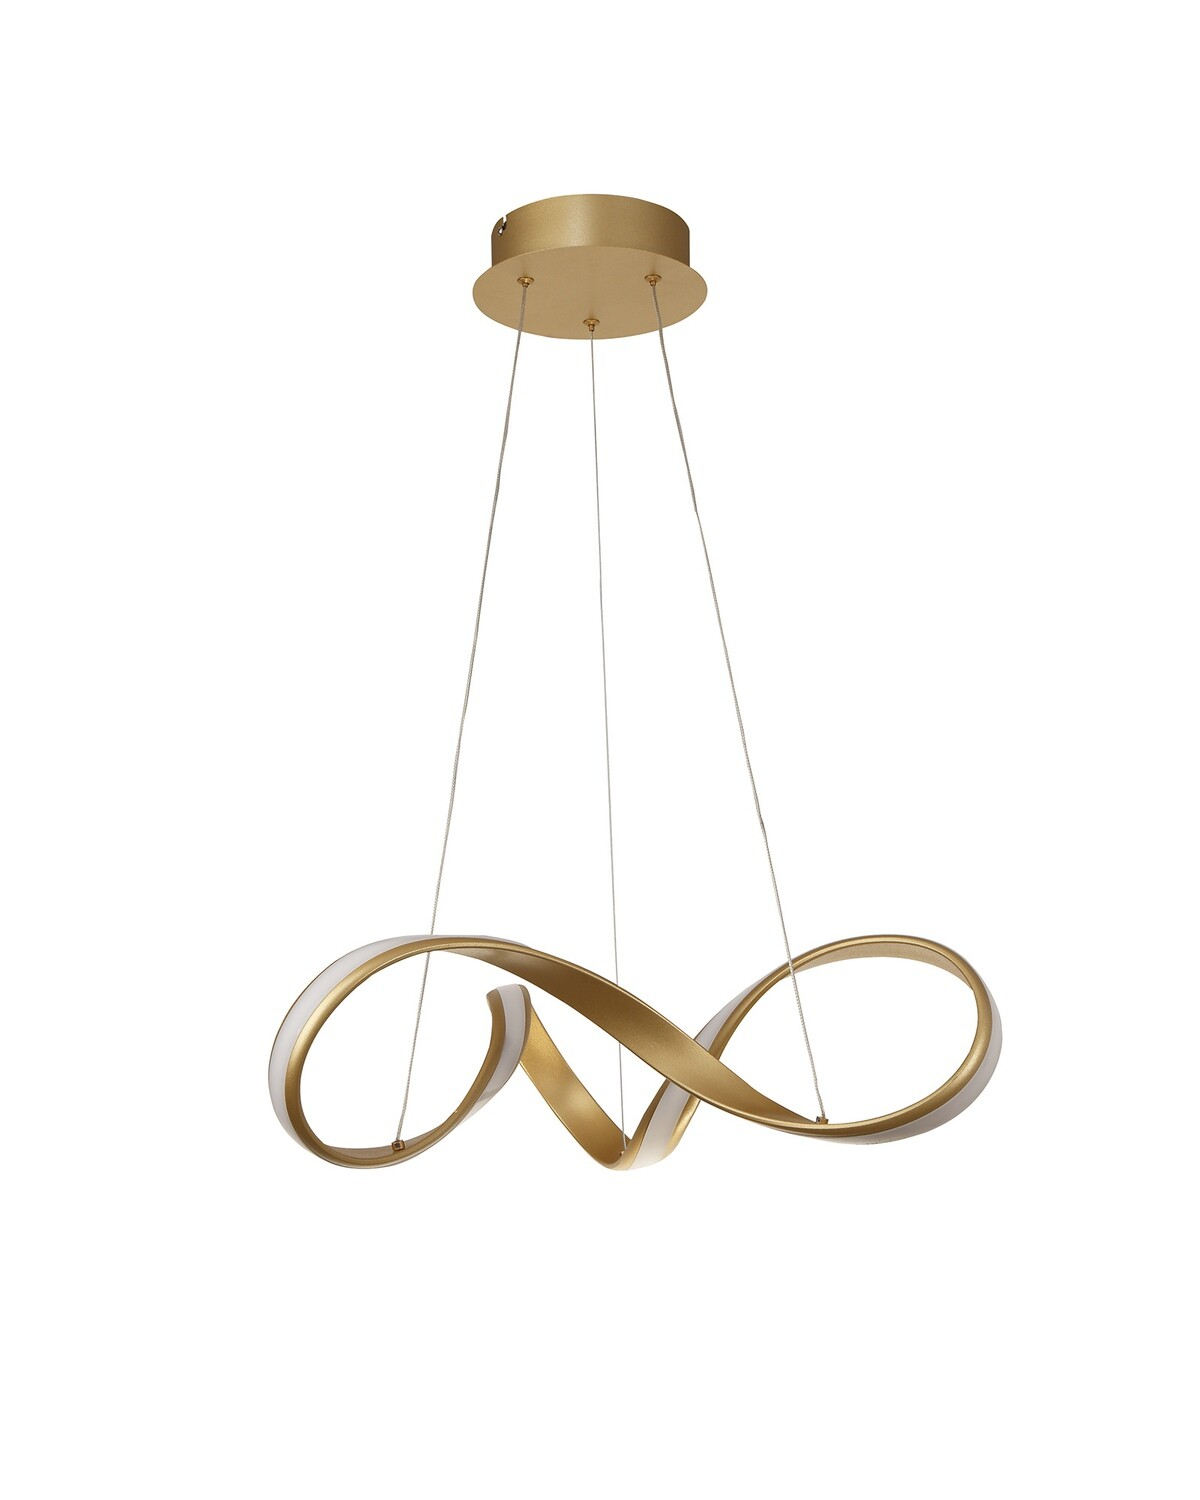 Tyler Small Pendant, 1 x 30W LED, 3000K, 1800lm, Sand Gold